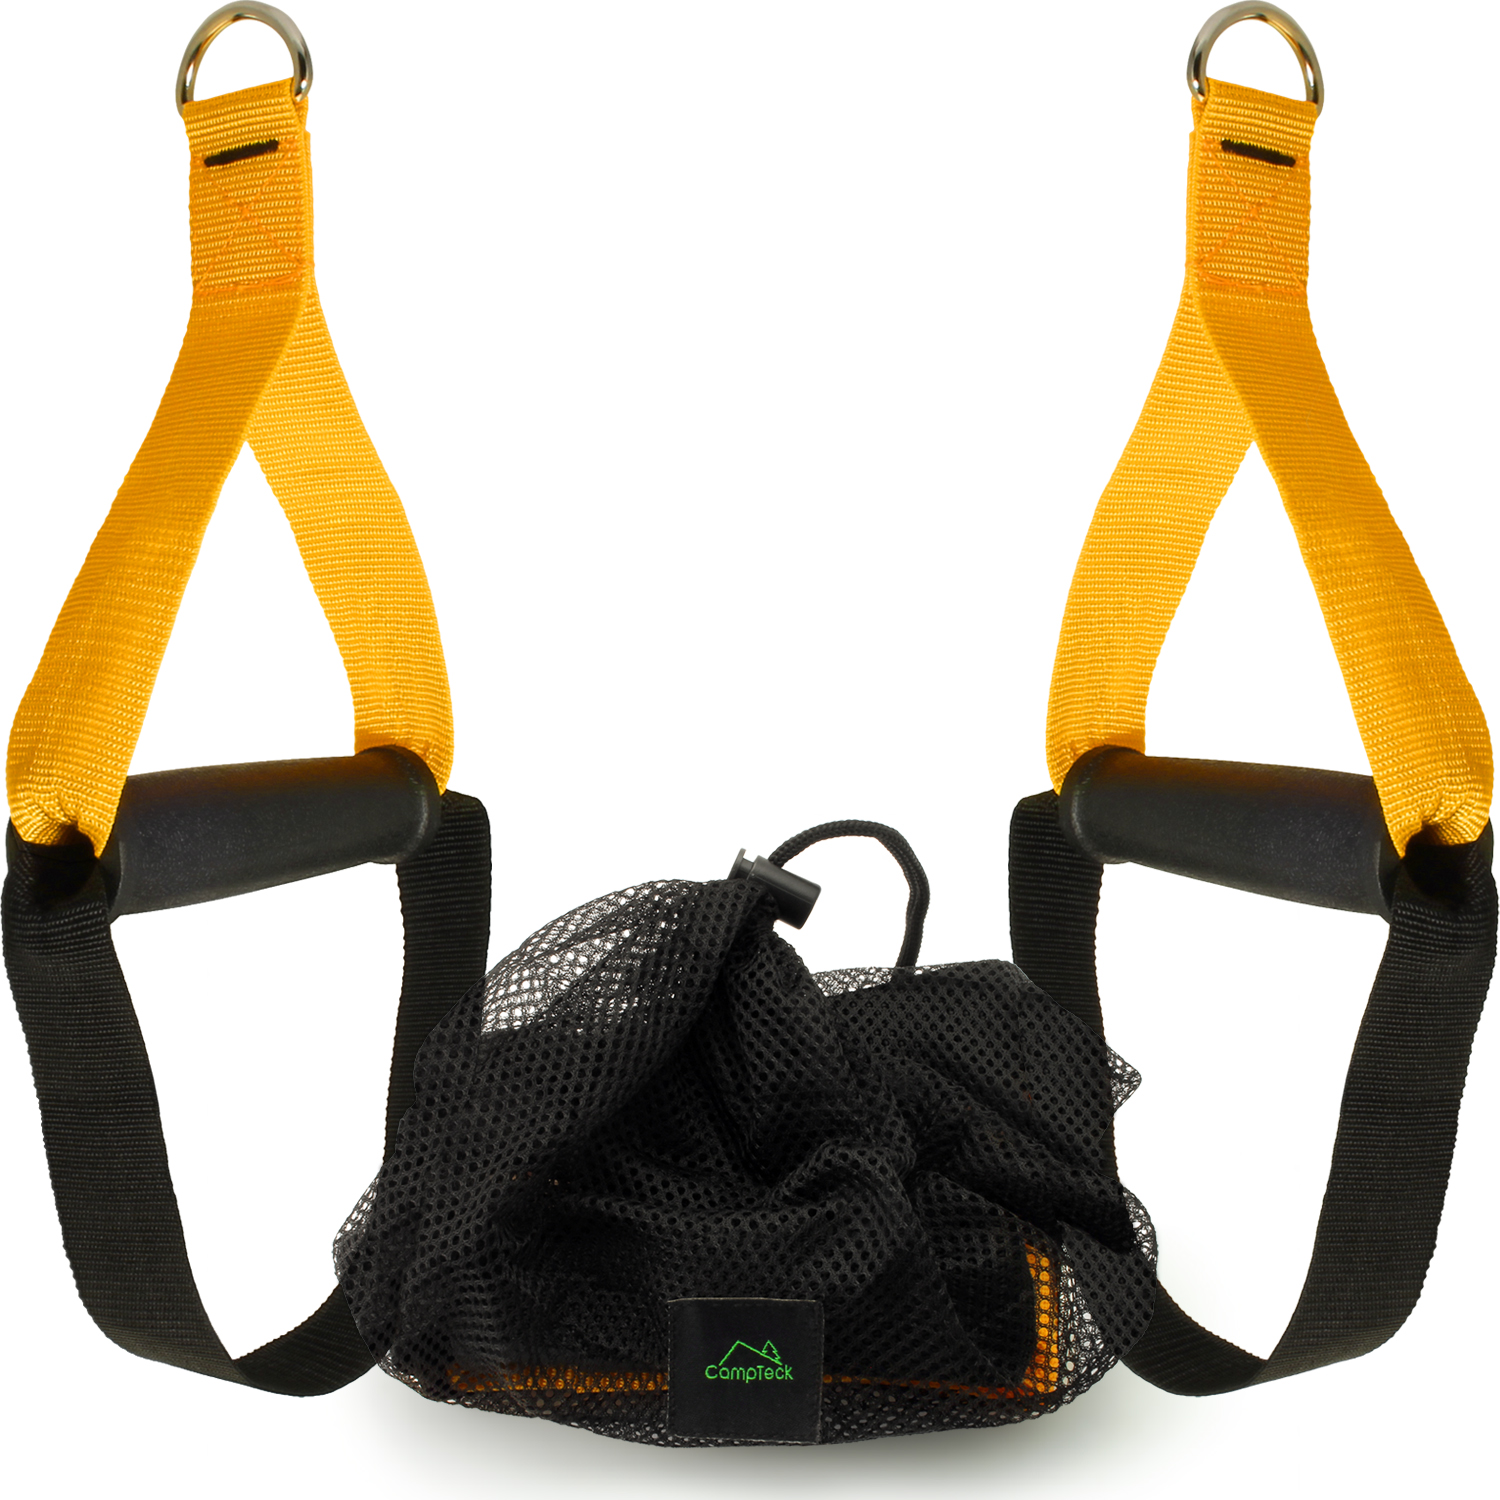 CampTeck Heavy Duty Grip Handles Attachments for Resistance Bands, Suspension Trainer, Cable Machine, Home Gym